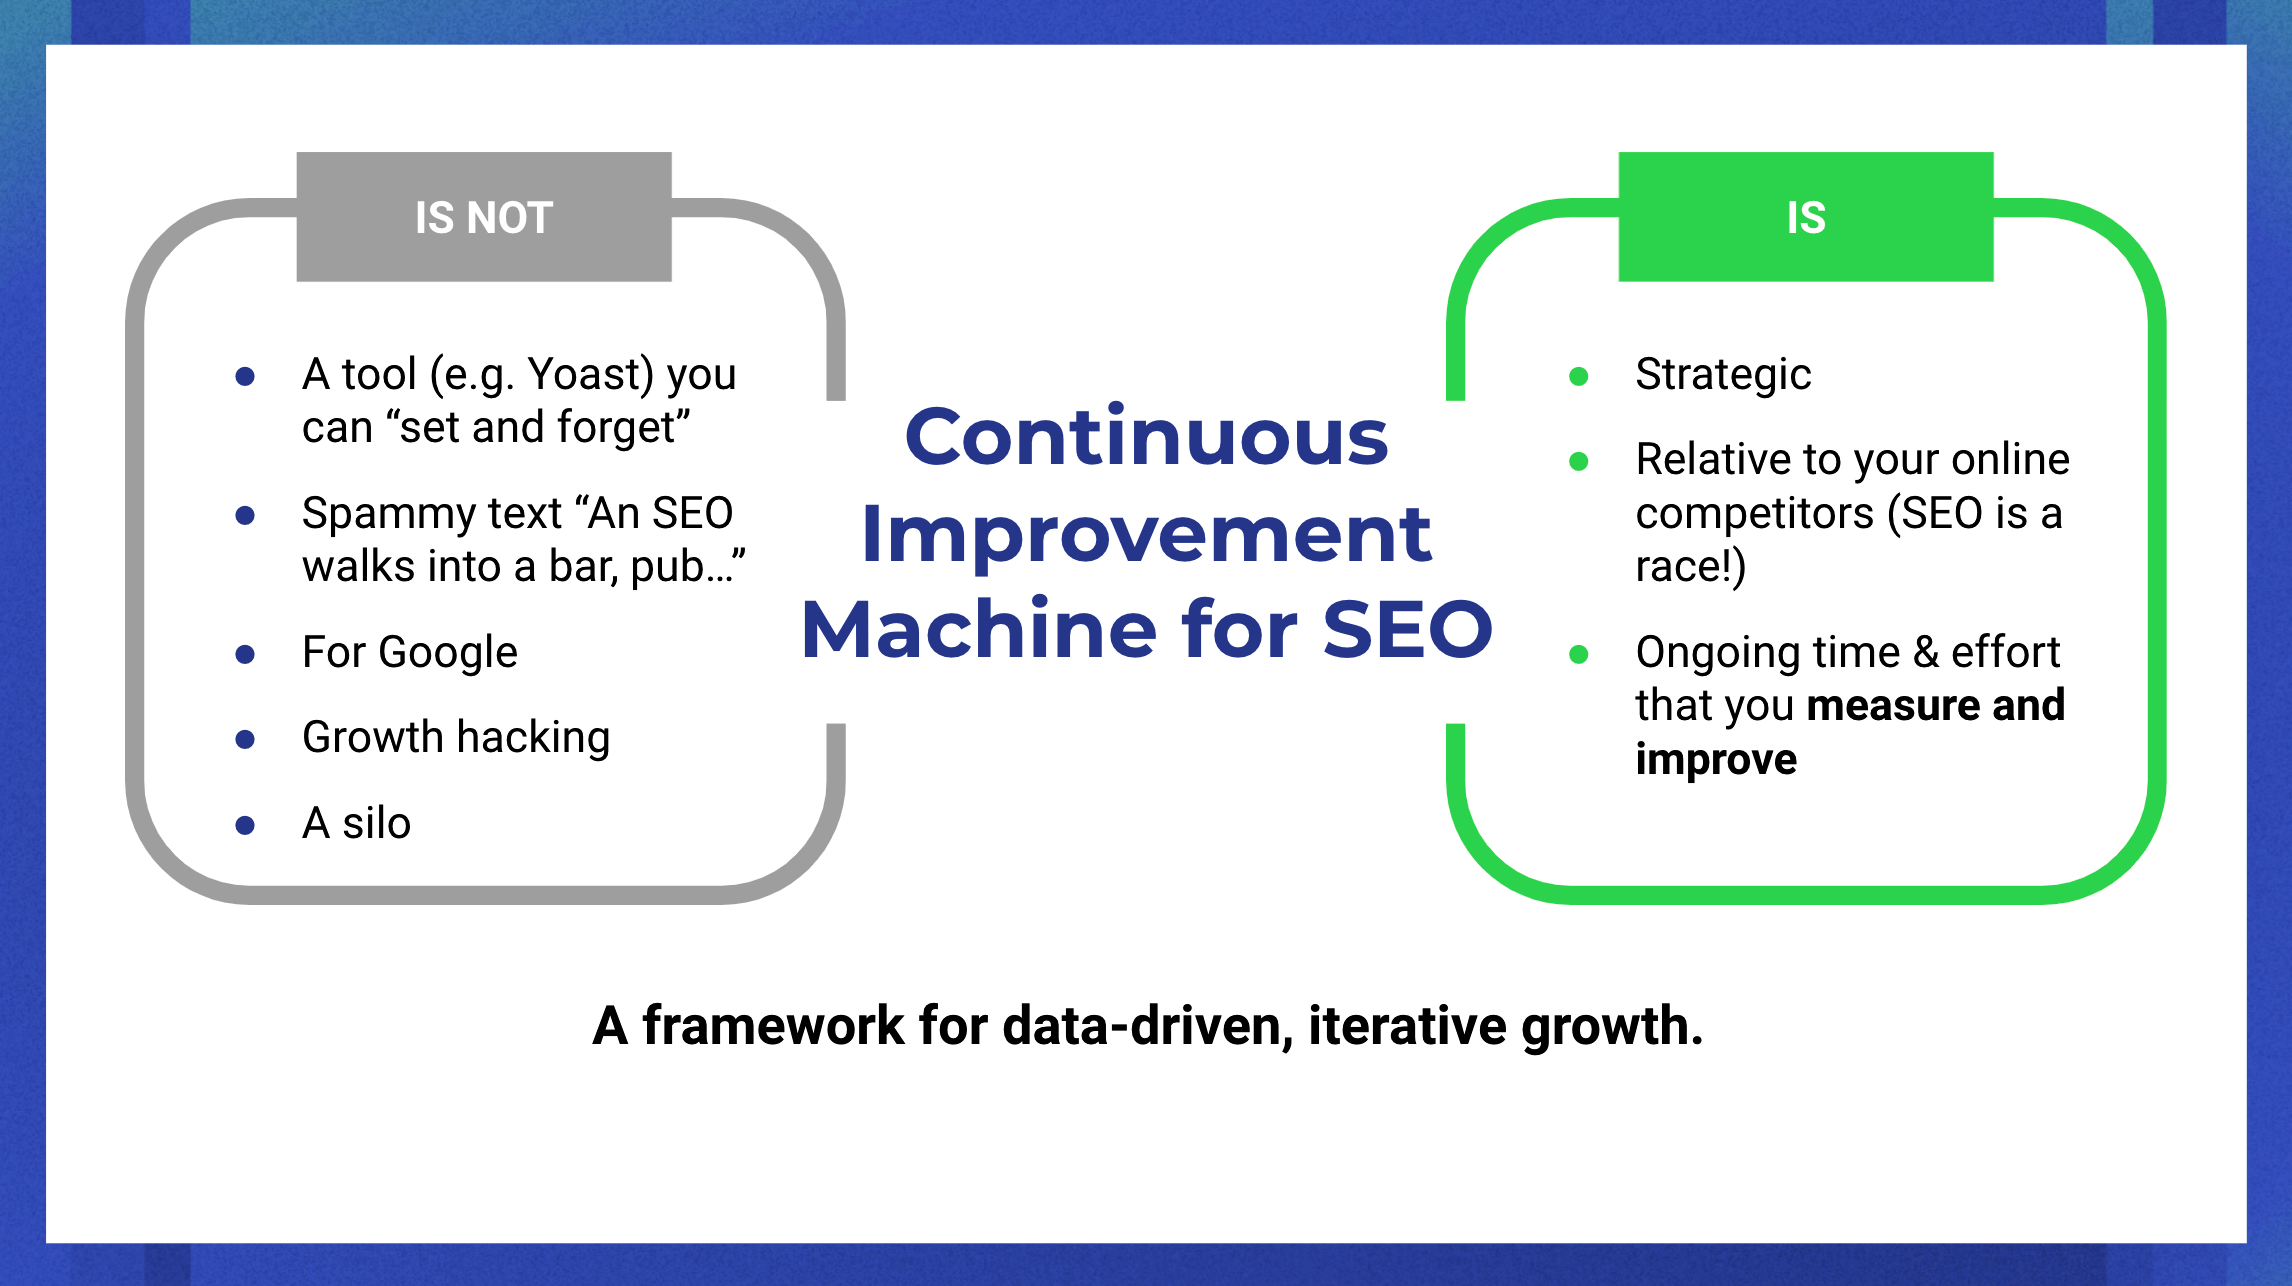 Continuous improvement machine for SEO: a framework for data-driven, iterative growth